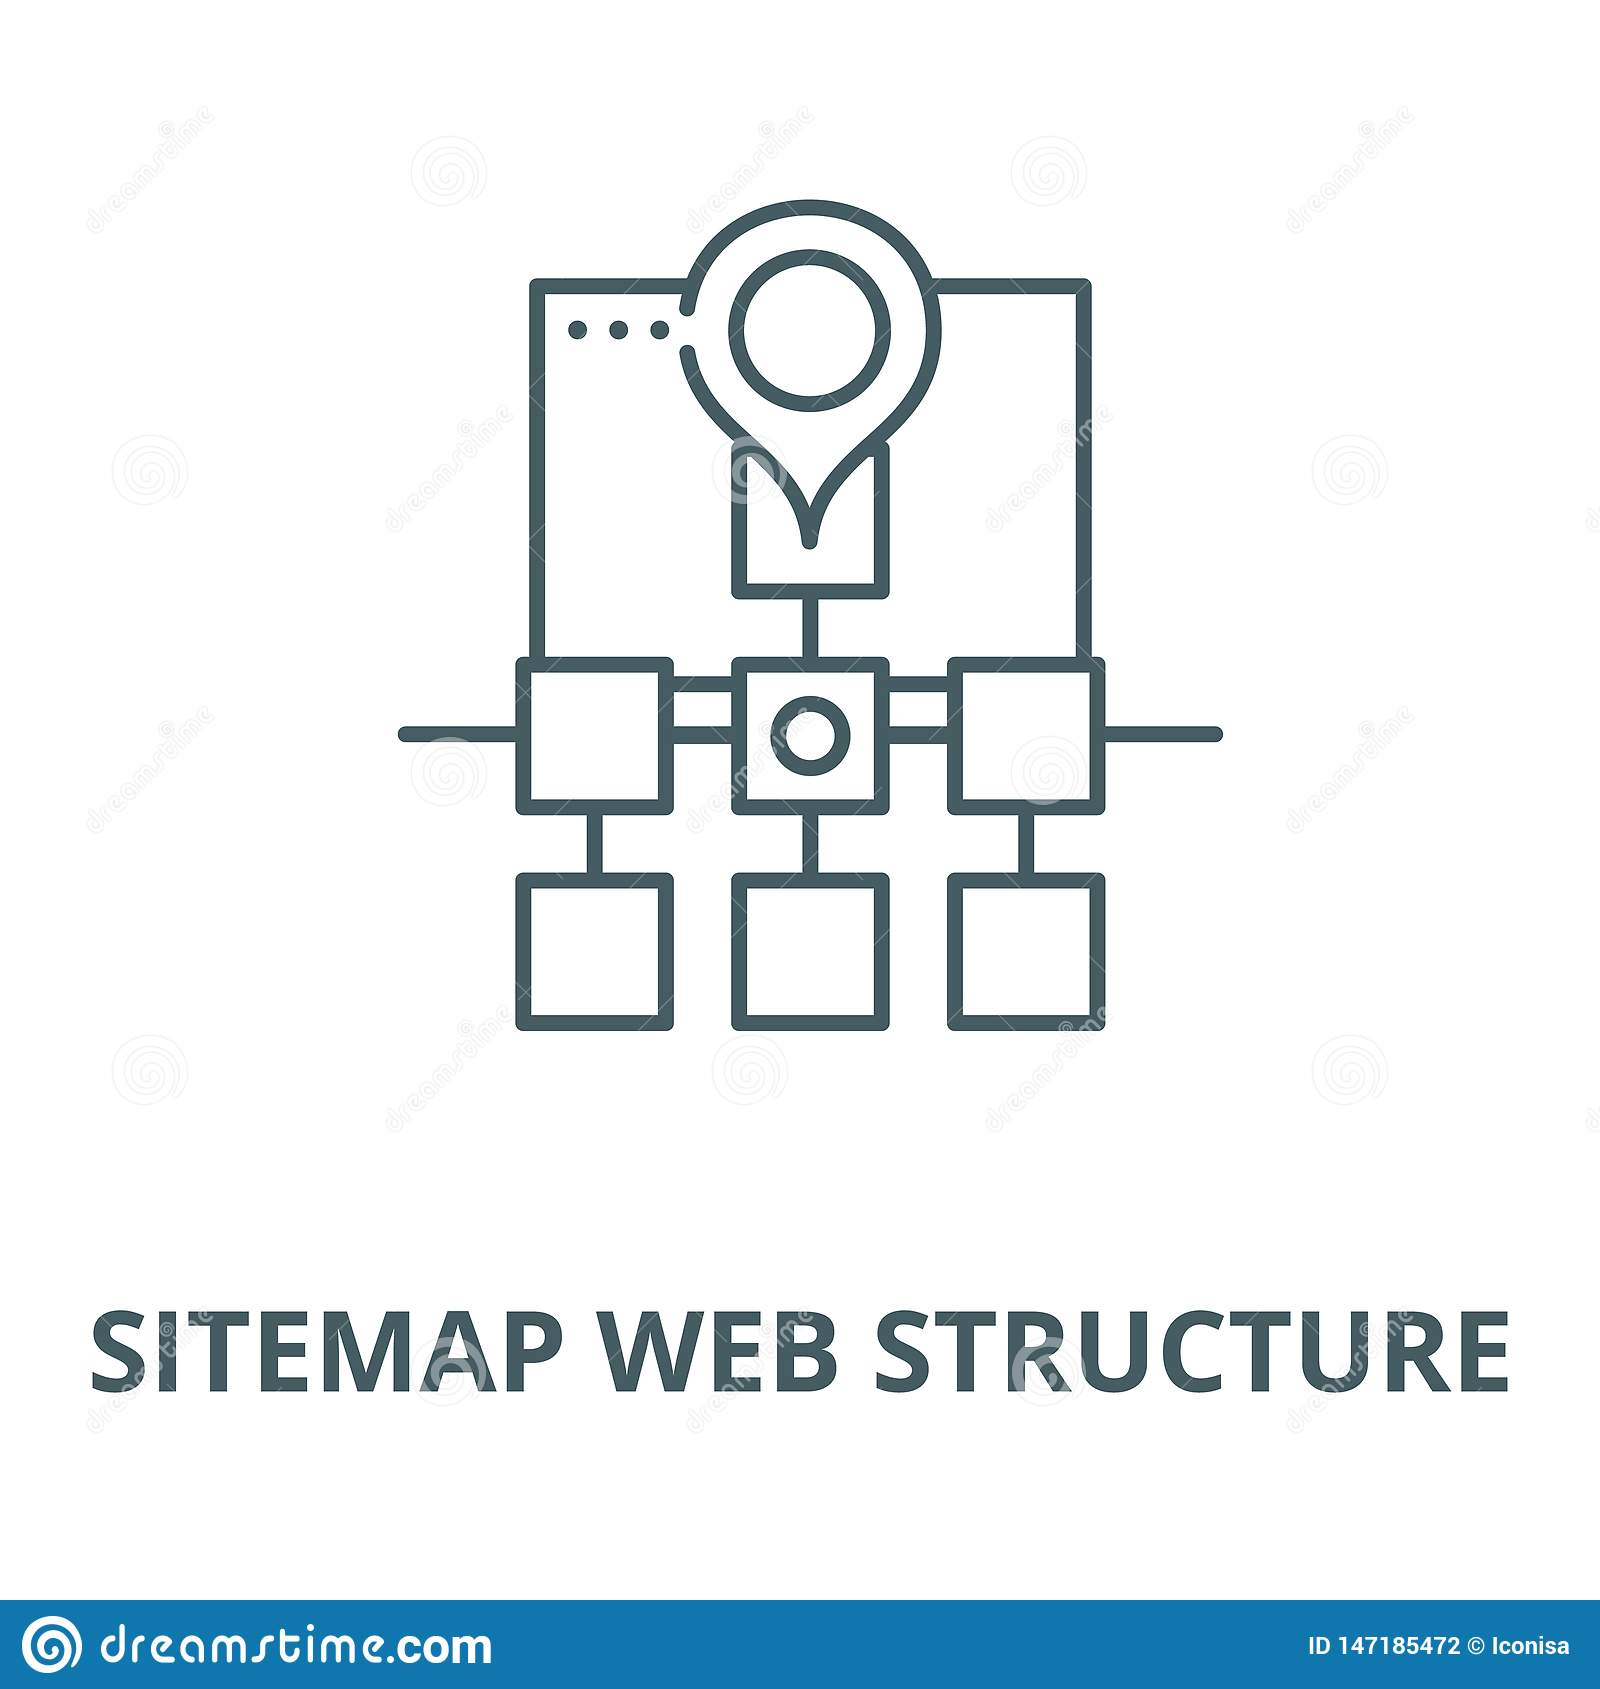 Sitemap web structure vector line icon, linear concept, outline sign, symbol